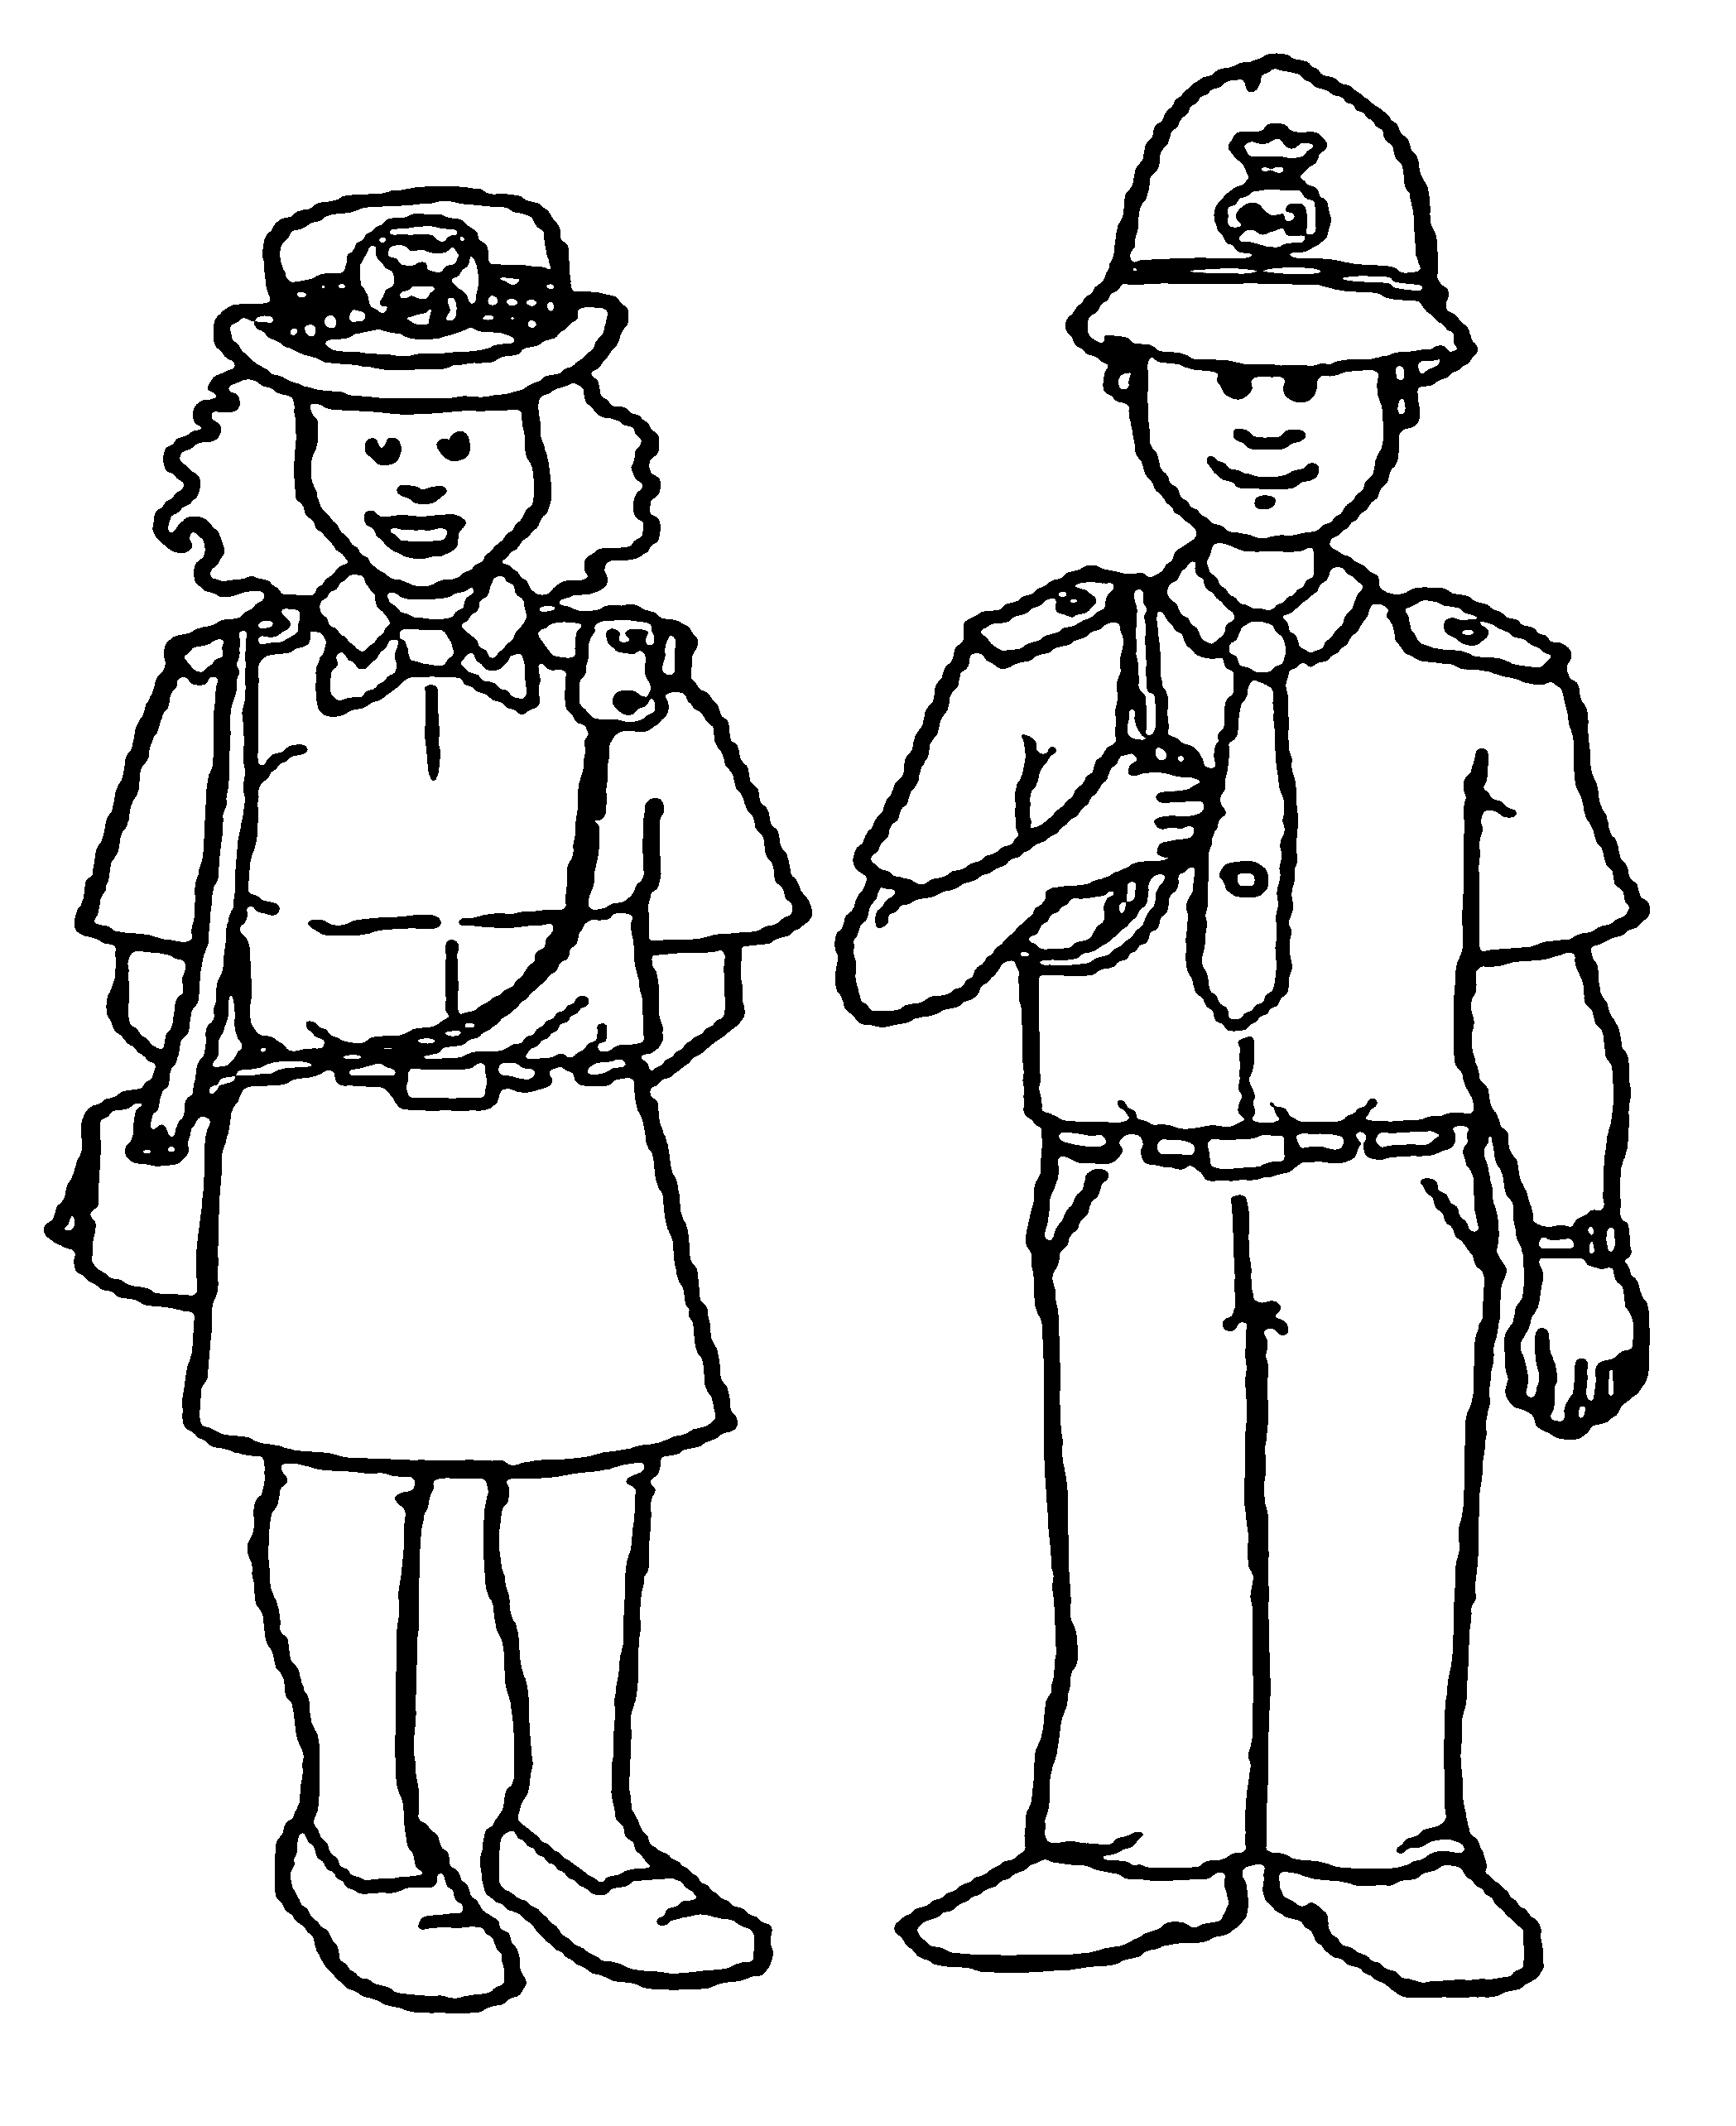 coloring police officer police officer coloring pages to download and print for free police officer coloring